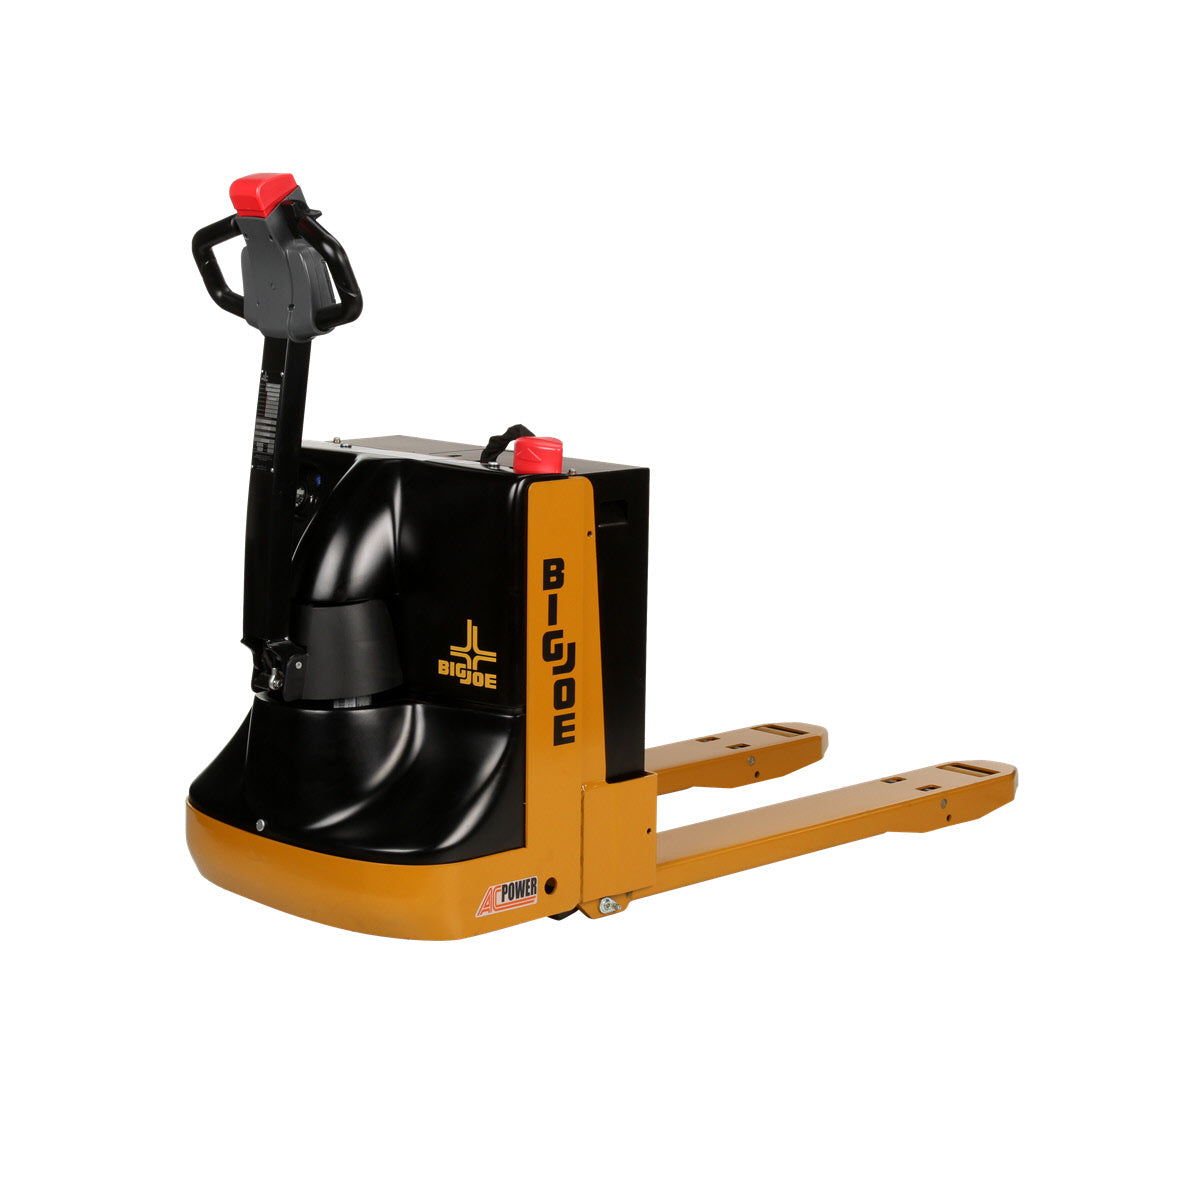 2019, Big Joe, WPT45 Medium Duty AC Pallet Truck, Material Handling Equipment